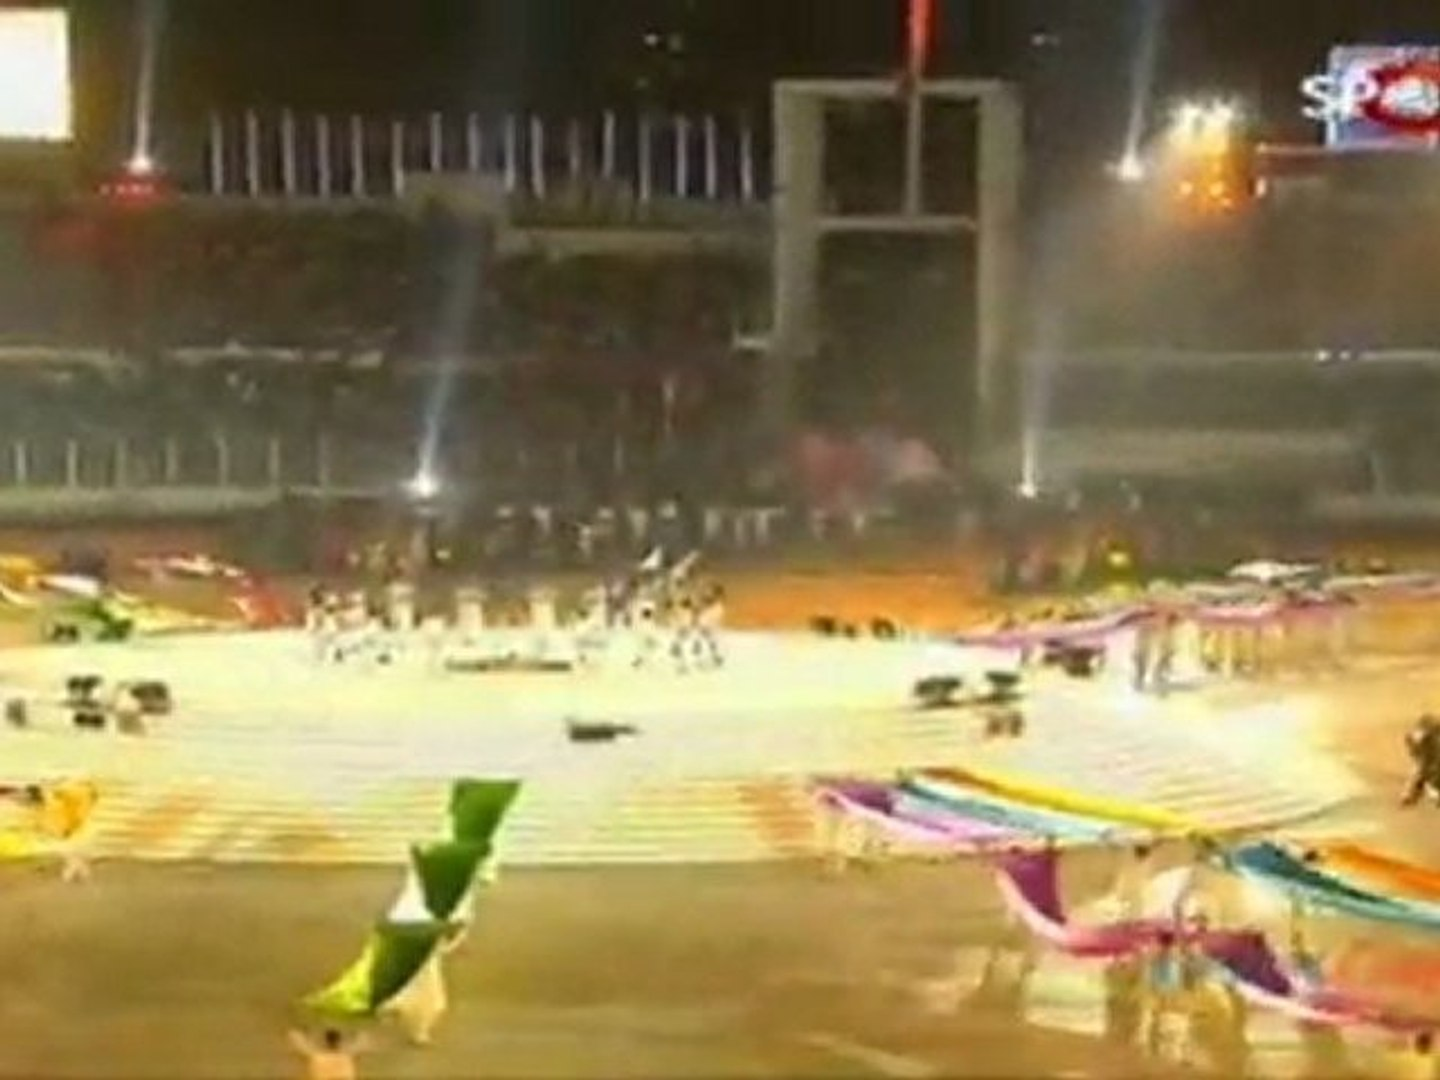 Cricket World Cup Opening Ceremony 2011 -17th Feb 2011 Part6